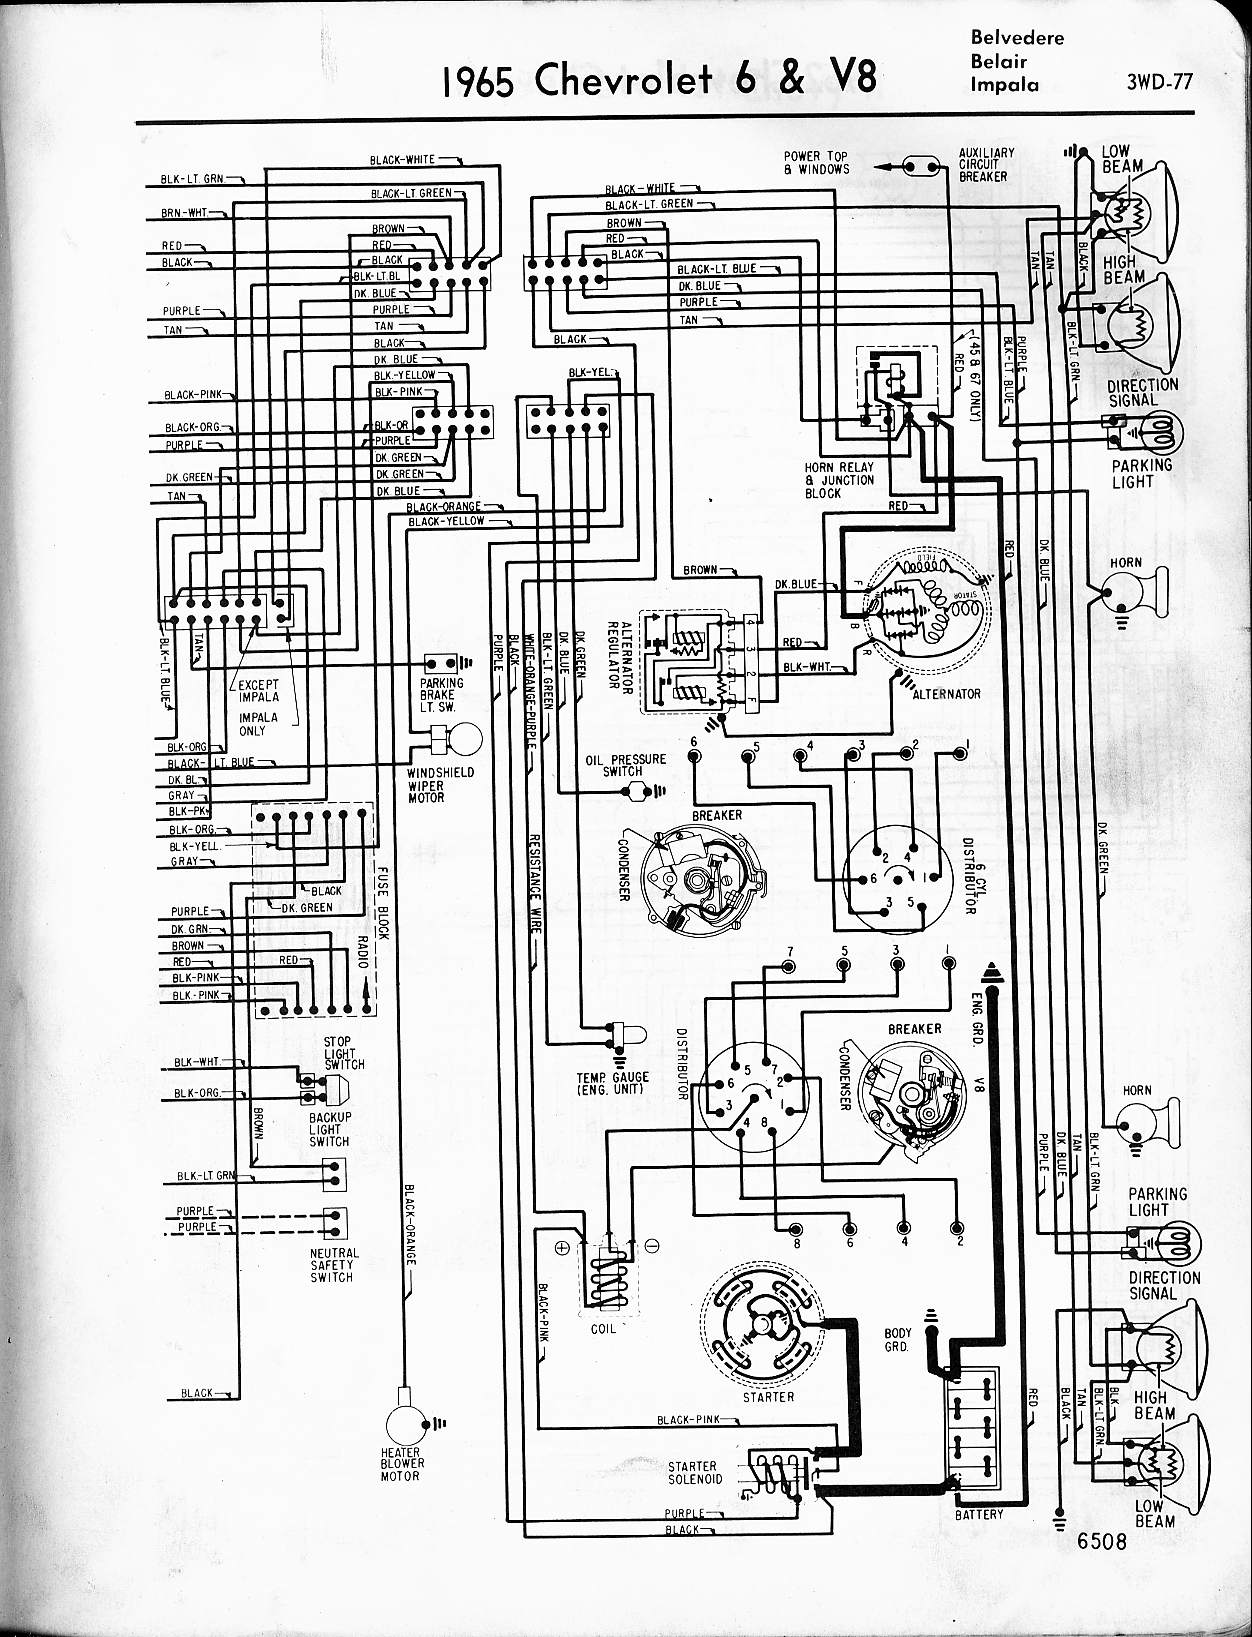 MWireChev65_3WD 077 57 65 chevy wiring diagrams 1965 chevy c10 wiring diagram at reclaimingppi.co